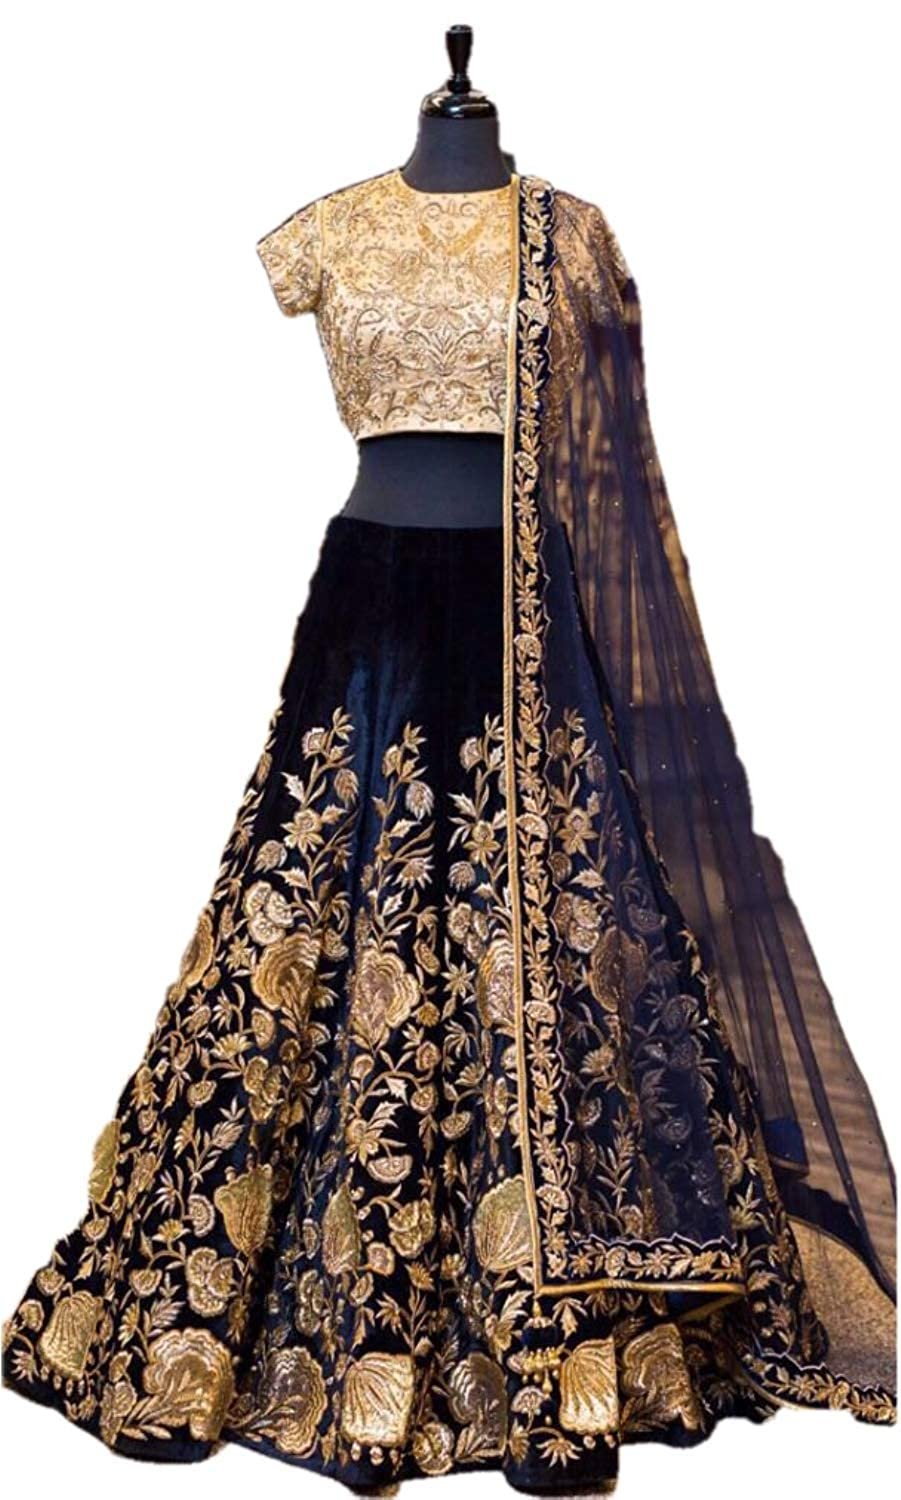 515b14a38c Amazon.com: REKHA Ethinc Shop Traditional Bridal Wedding Lehenga Choli Navy  Blue Color with Net Duptta A349: Clothing